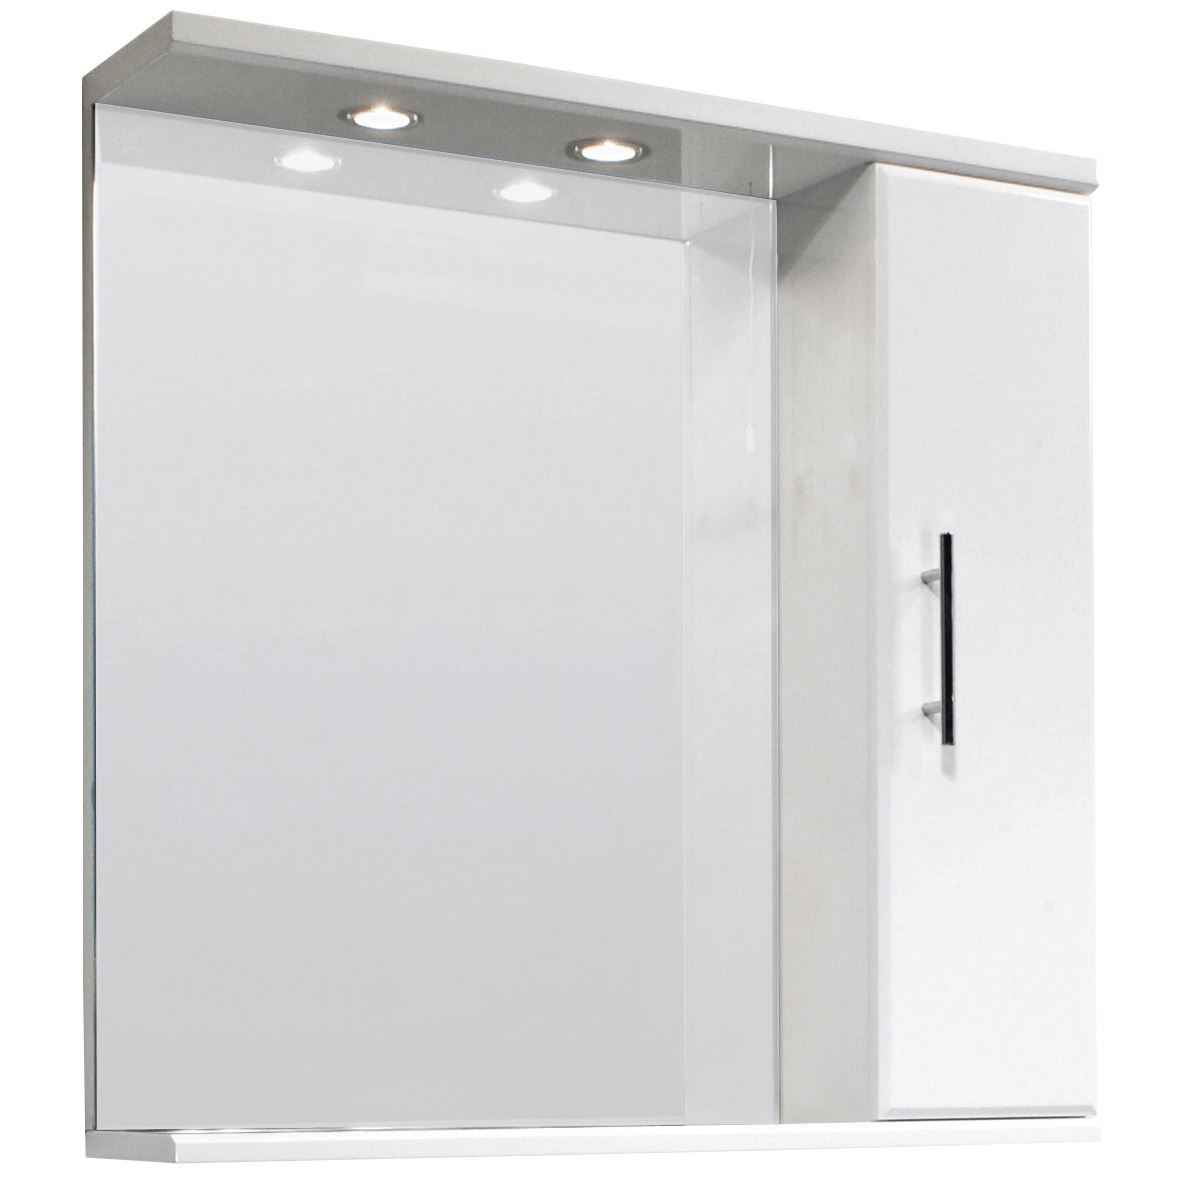 illuminated high gloss white bathroom mirror vanity cabinet inset